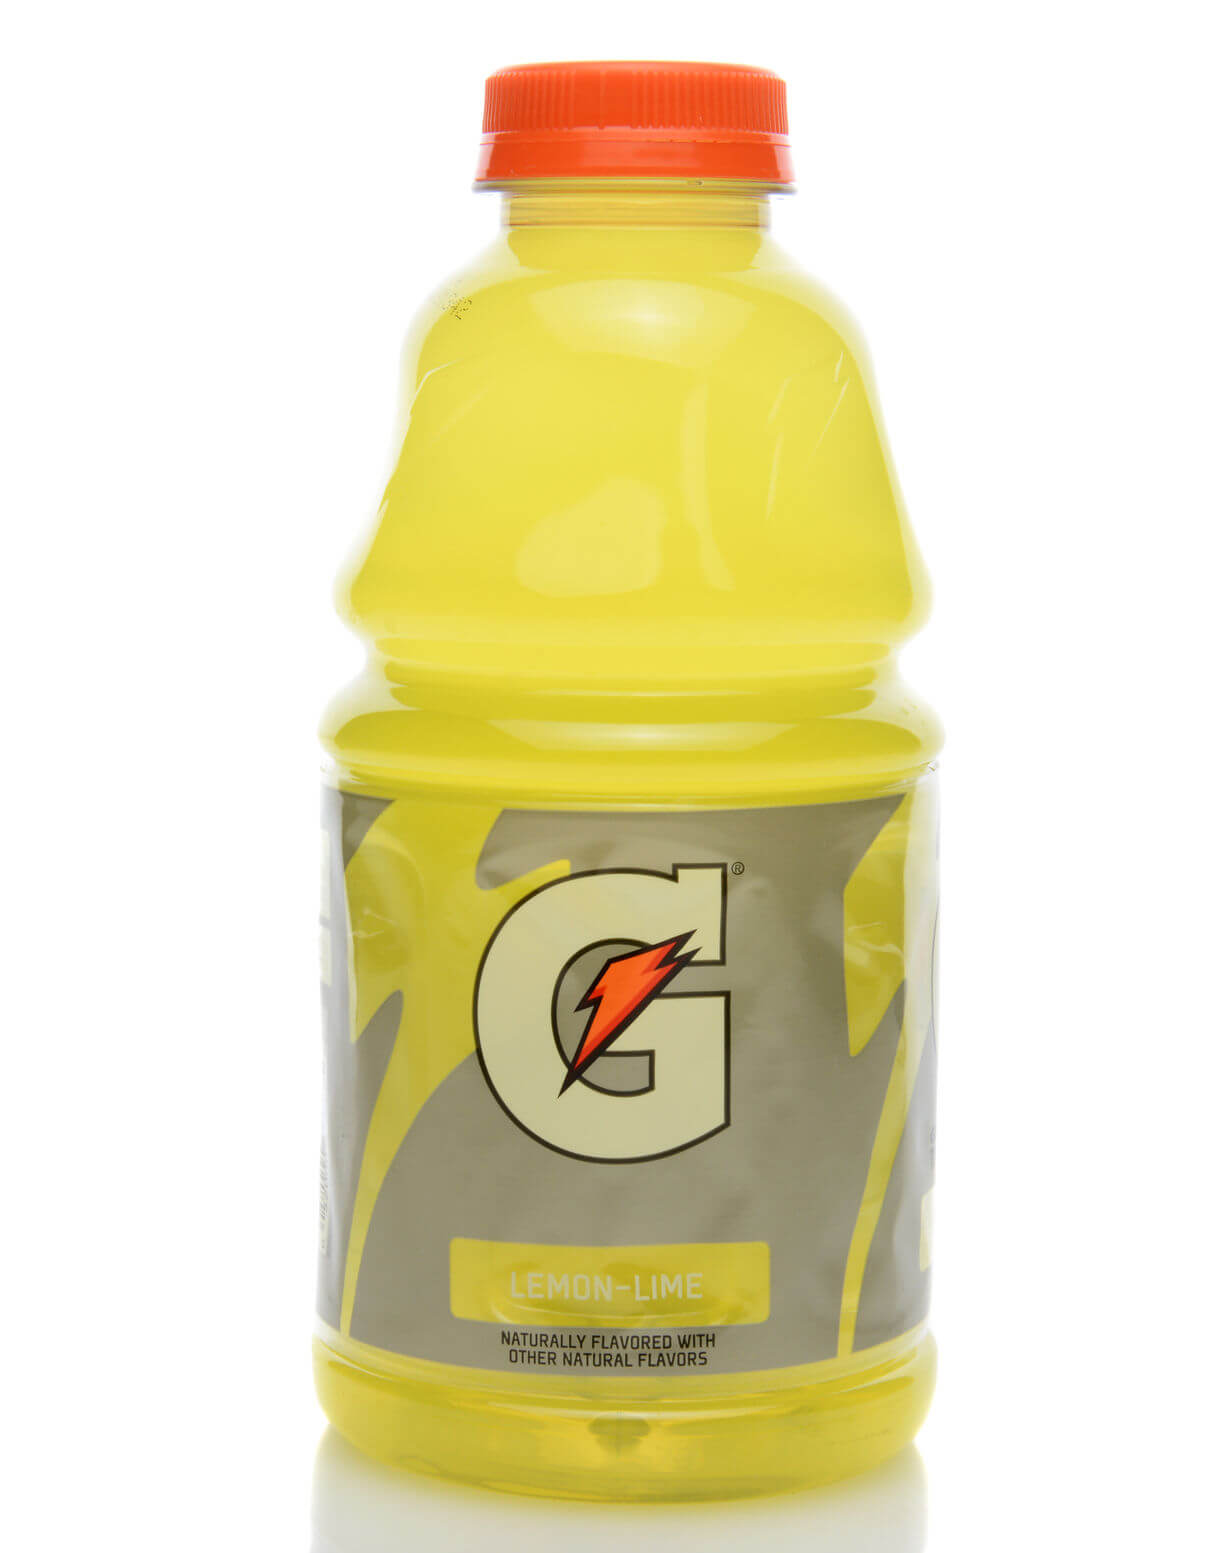 Gatorade and other sports drinks are a food high in sugar that make you fat